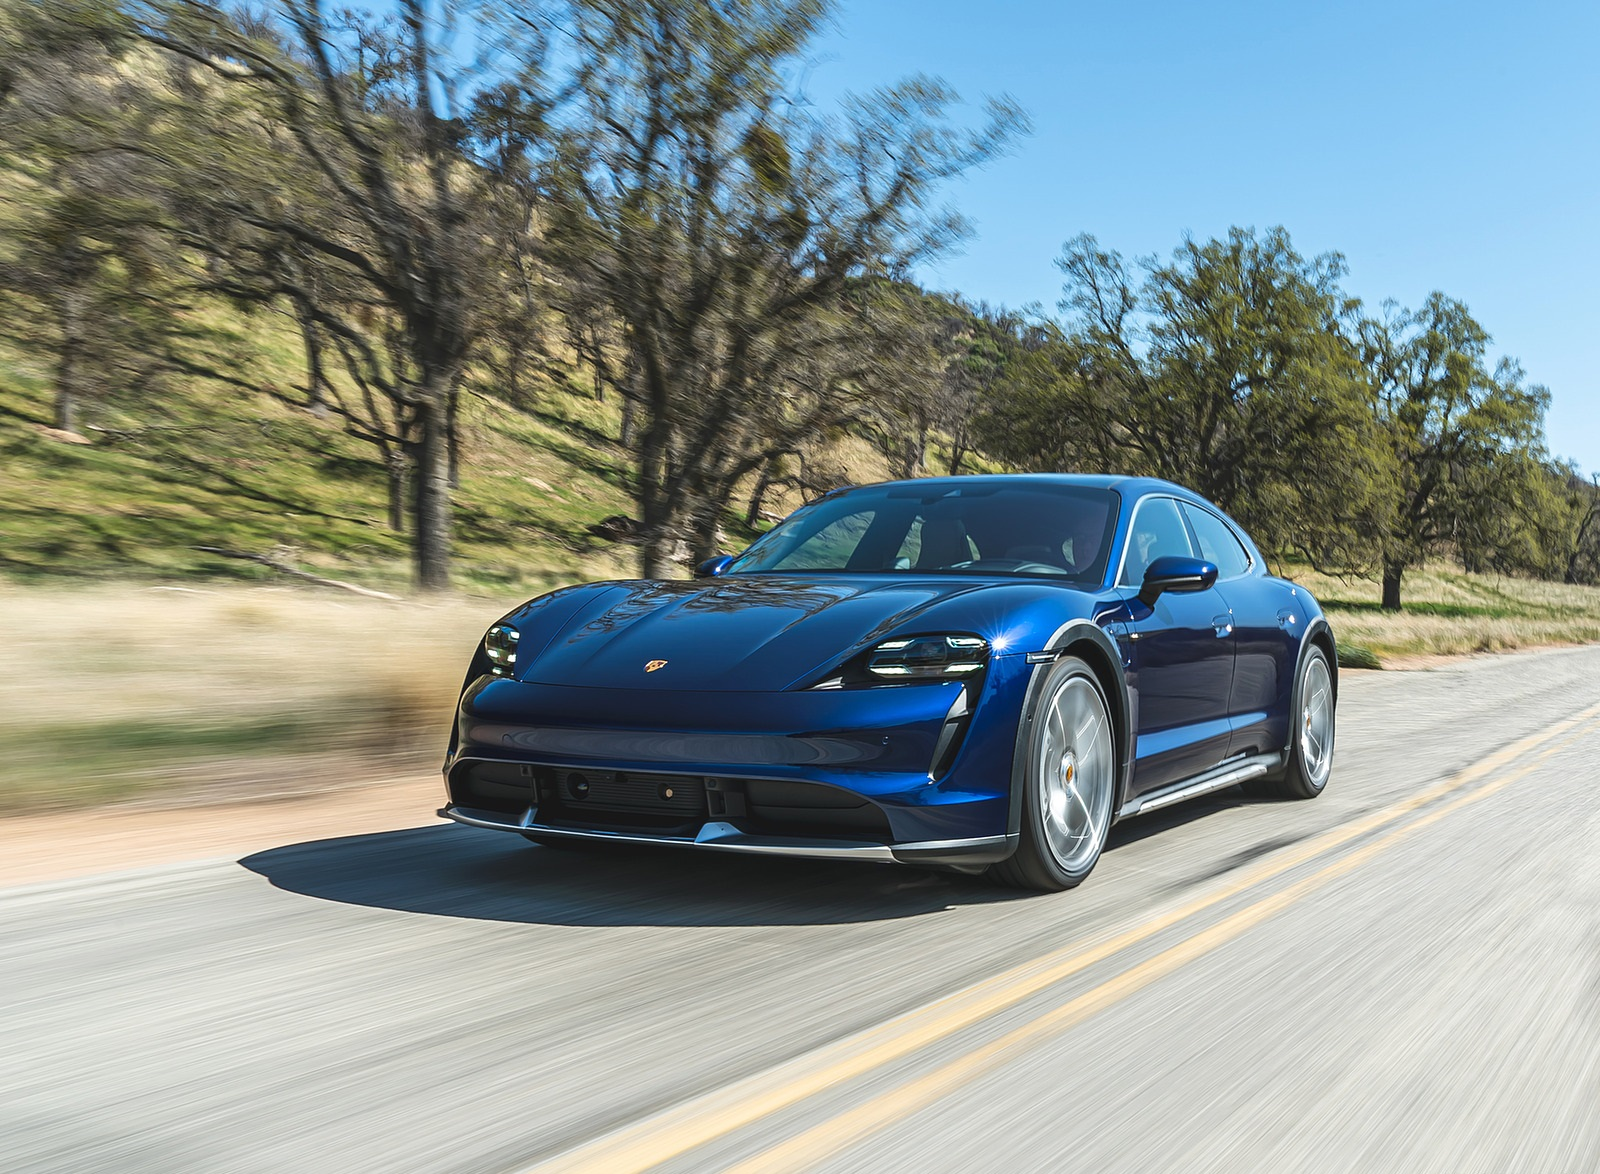 2022 Porsche Taycan Turbo Cross Turismo (Color: Gentian Blue) Front Three-Quarter Wallpapers (2)